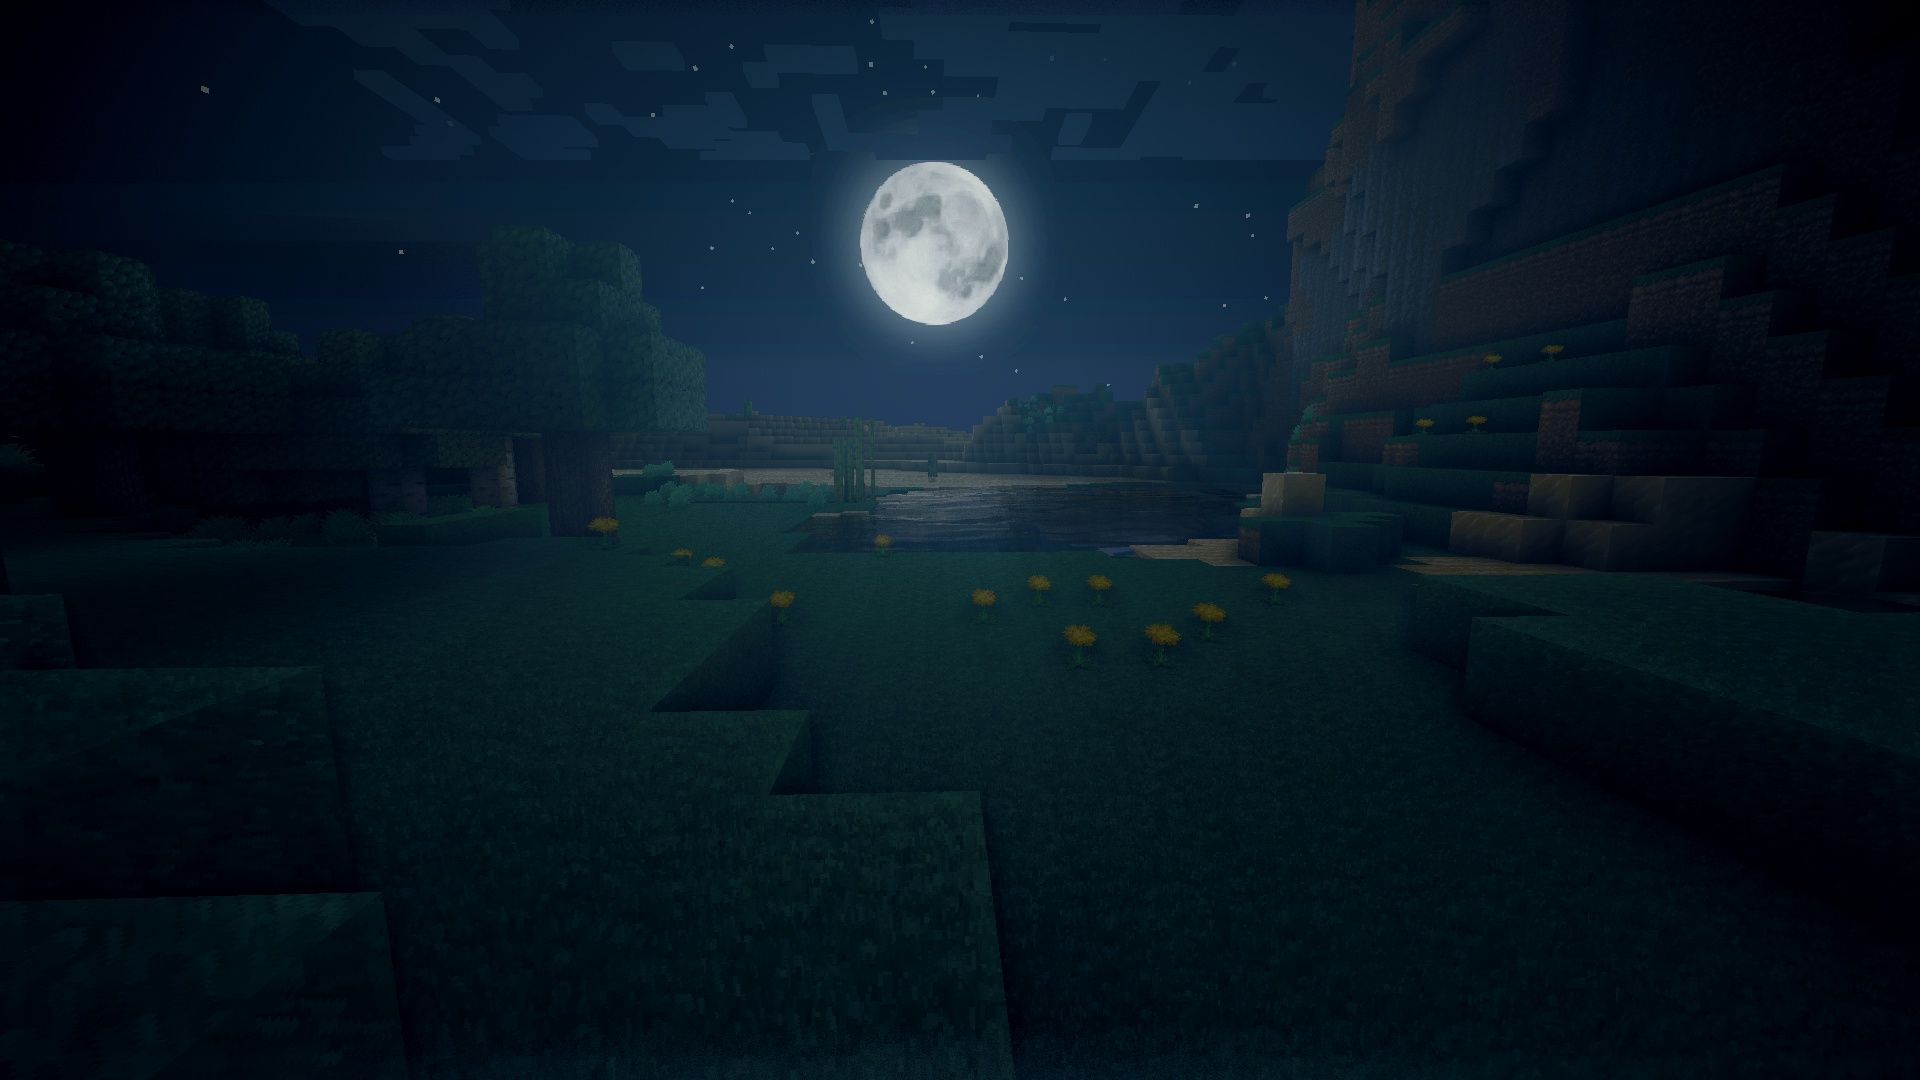 chocapic13 shaders galeria 5